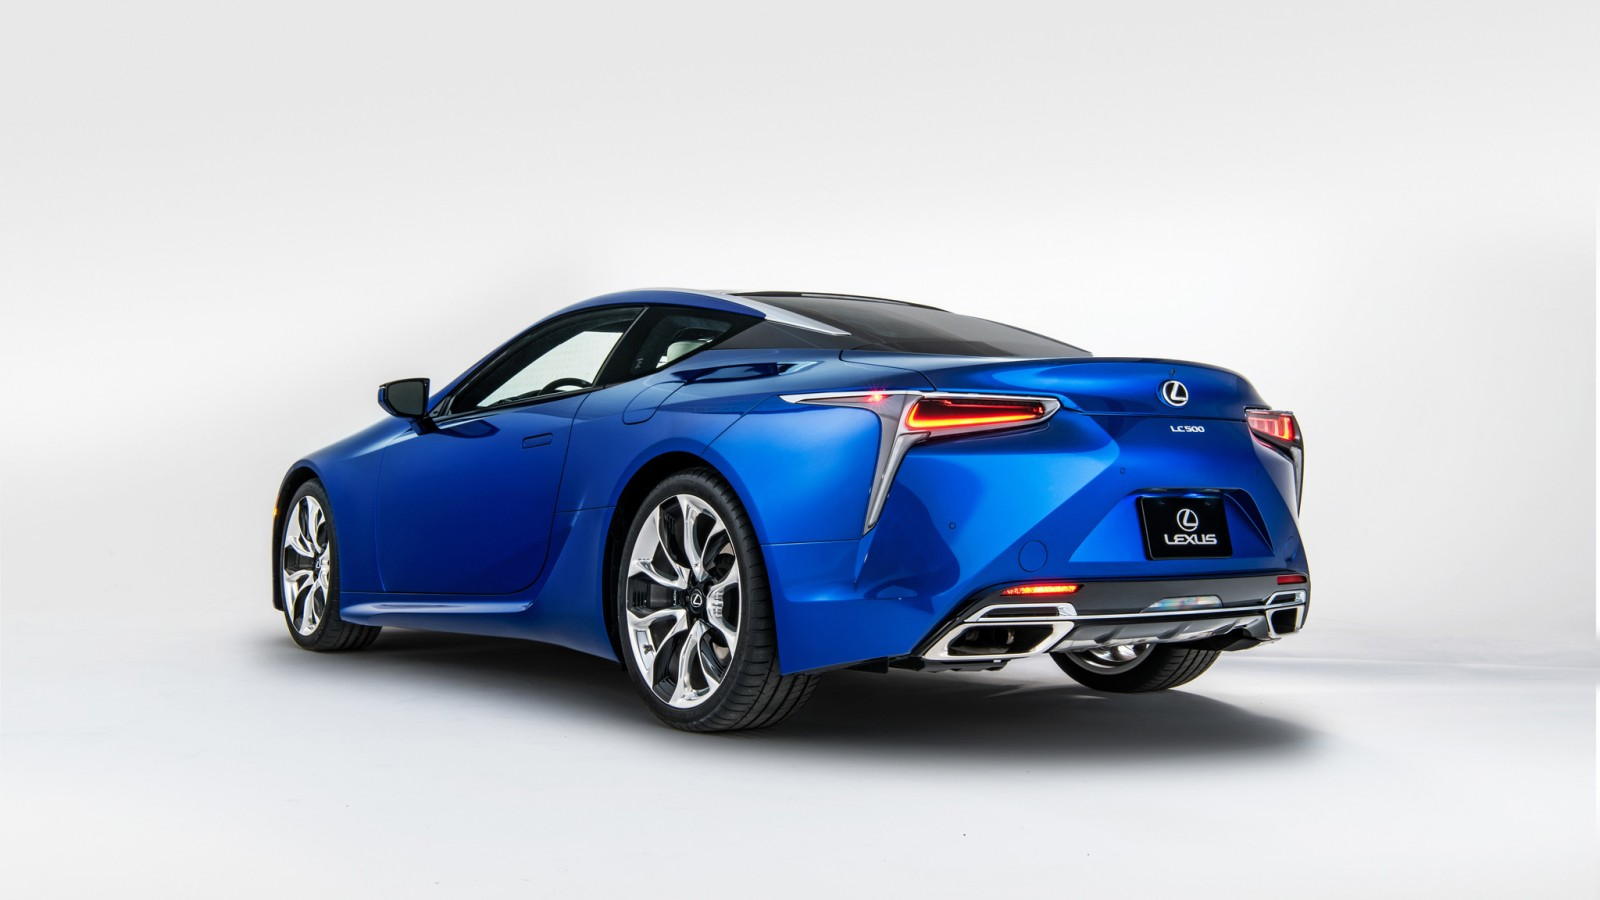 2018 Lexus LC 500 Inspiration Series 2 Wallpaper